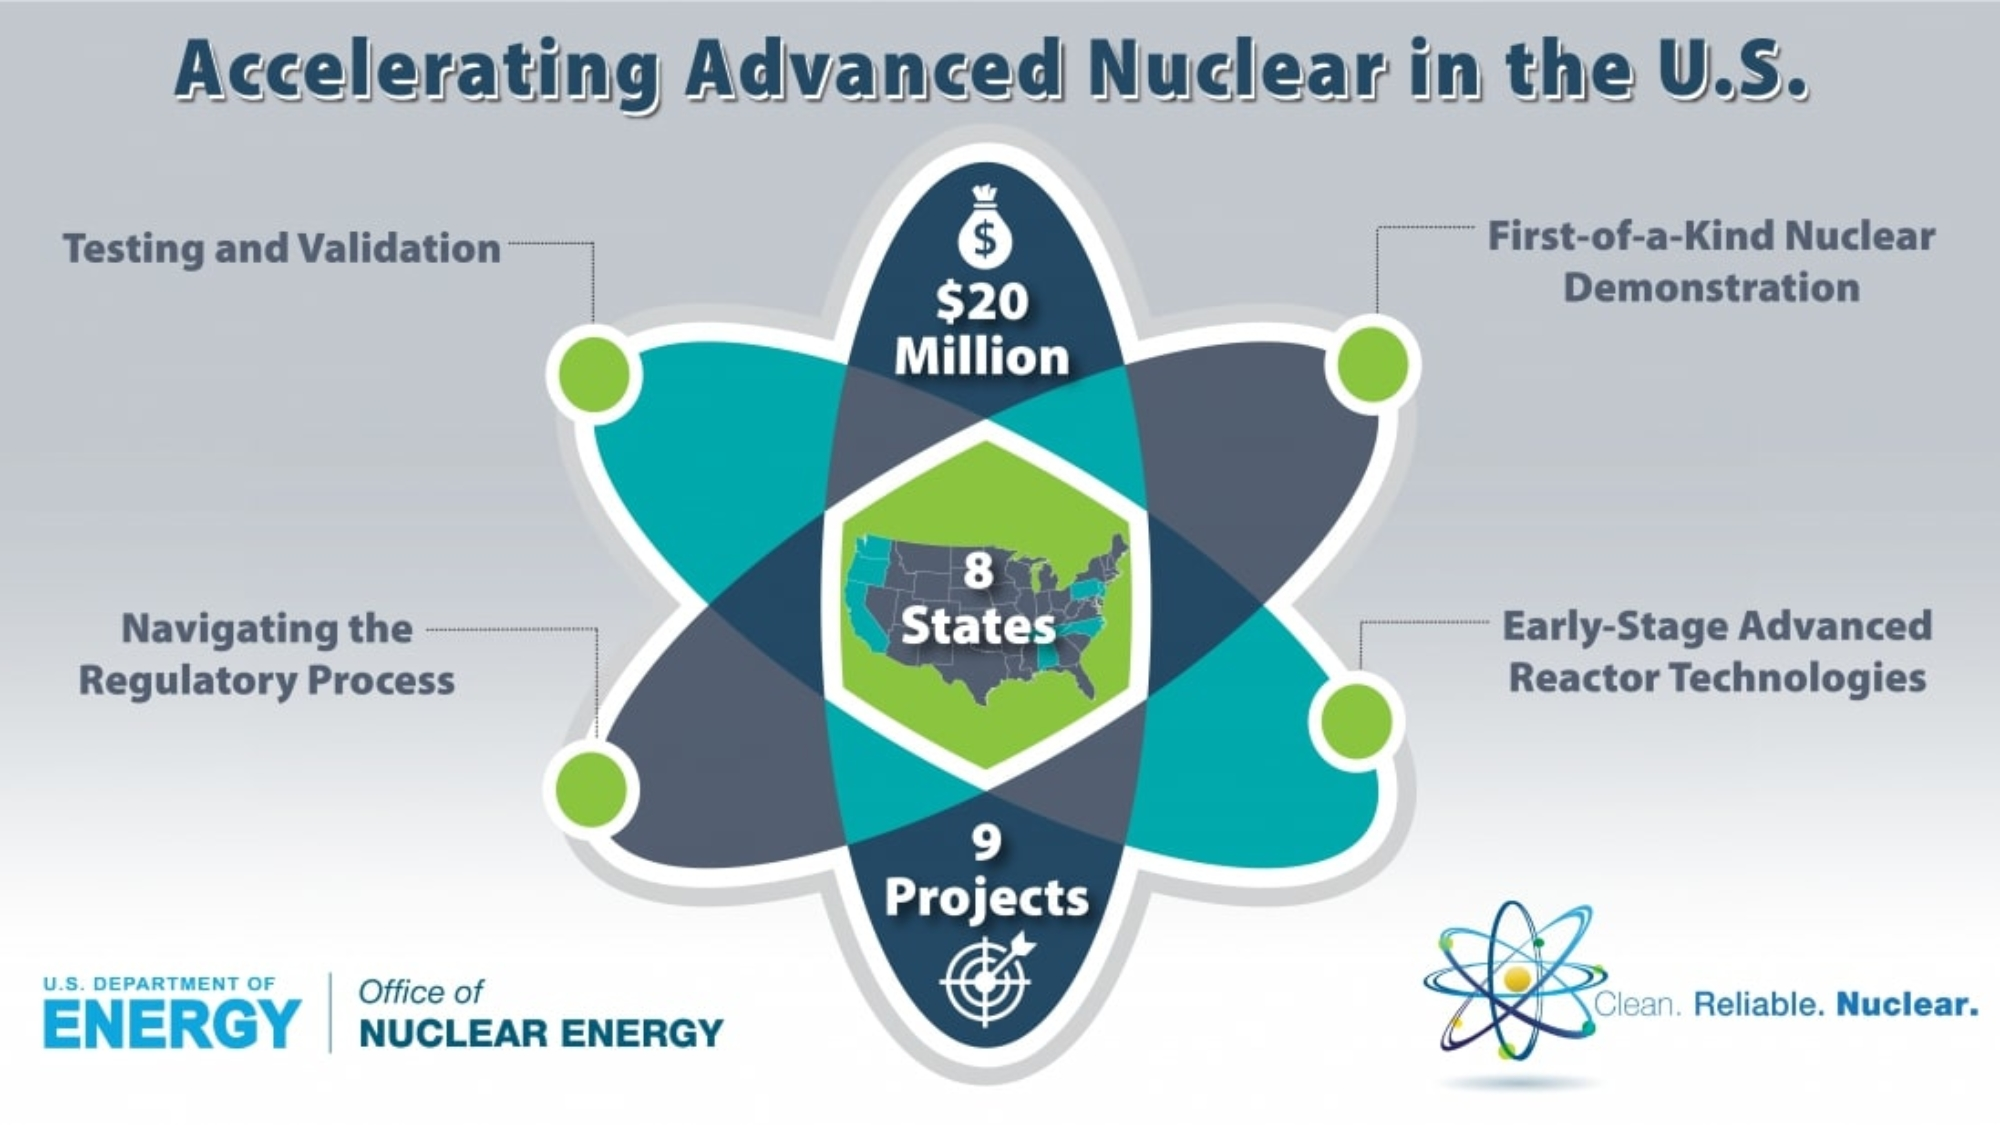 070918 Accelerating Advanced Reactors infographic-1200x627-01